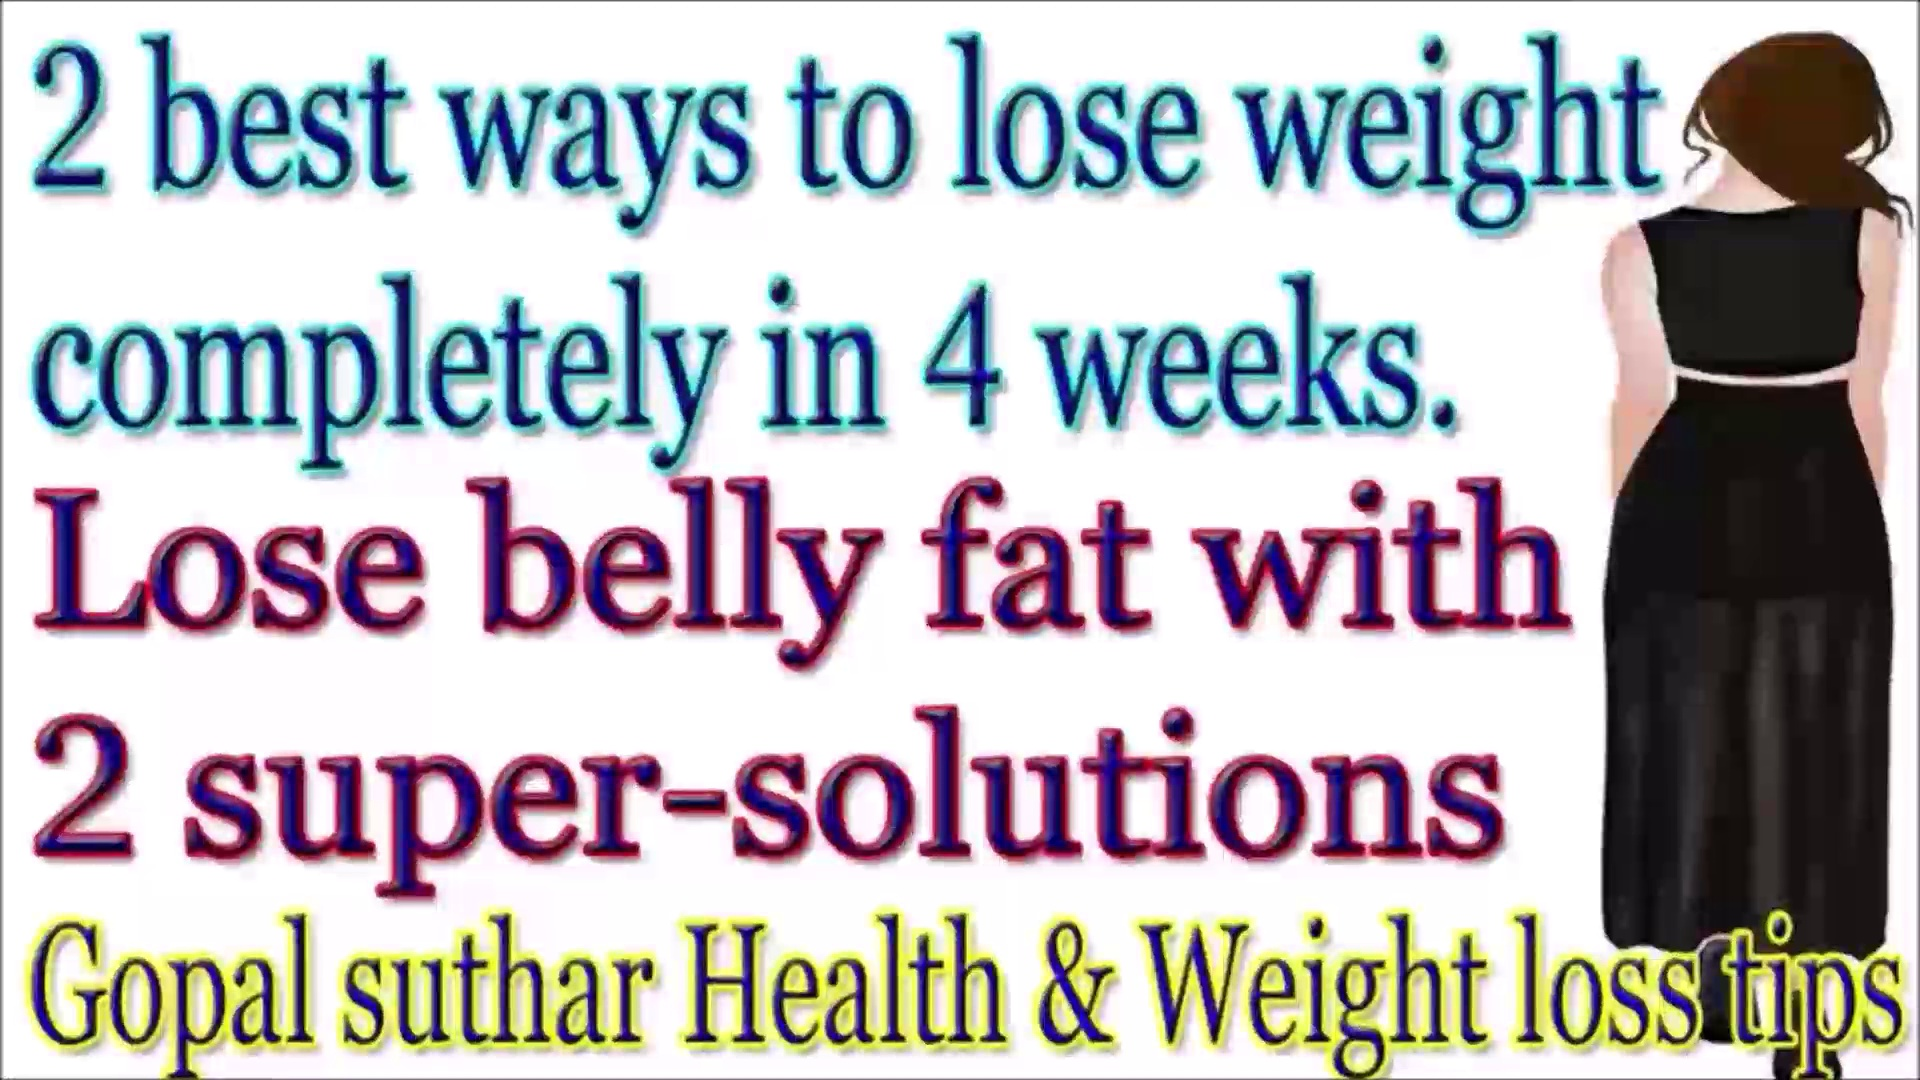 The best ways to lose weight completely in 4 weeks | Weight loss drink to lose whole butt, thighs and belly fat at home | Gopal suthar Health and Weight loss tips